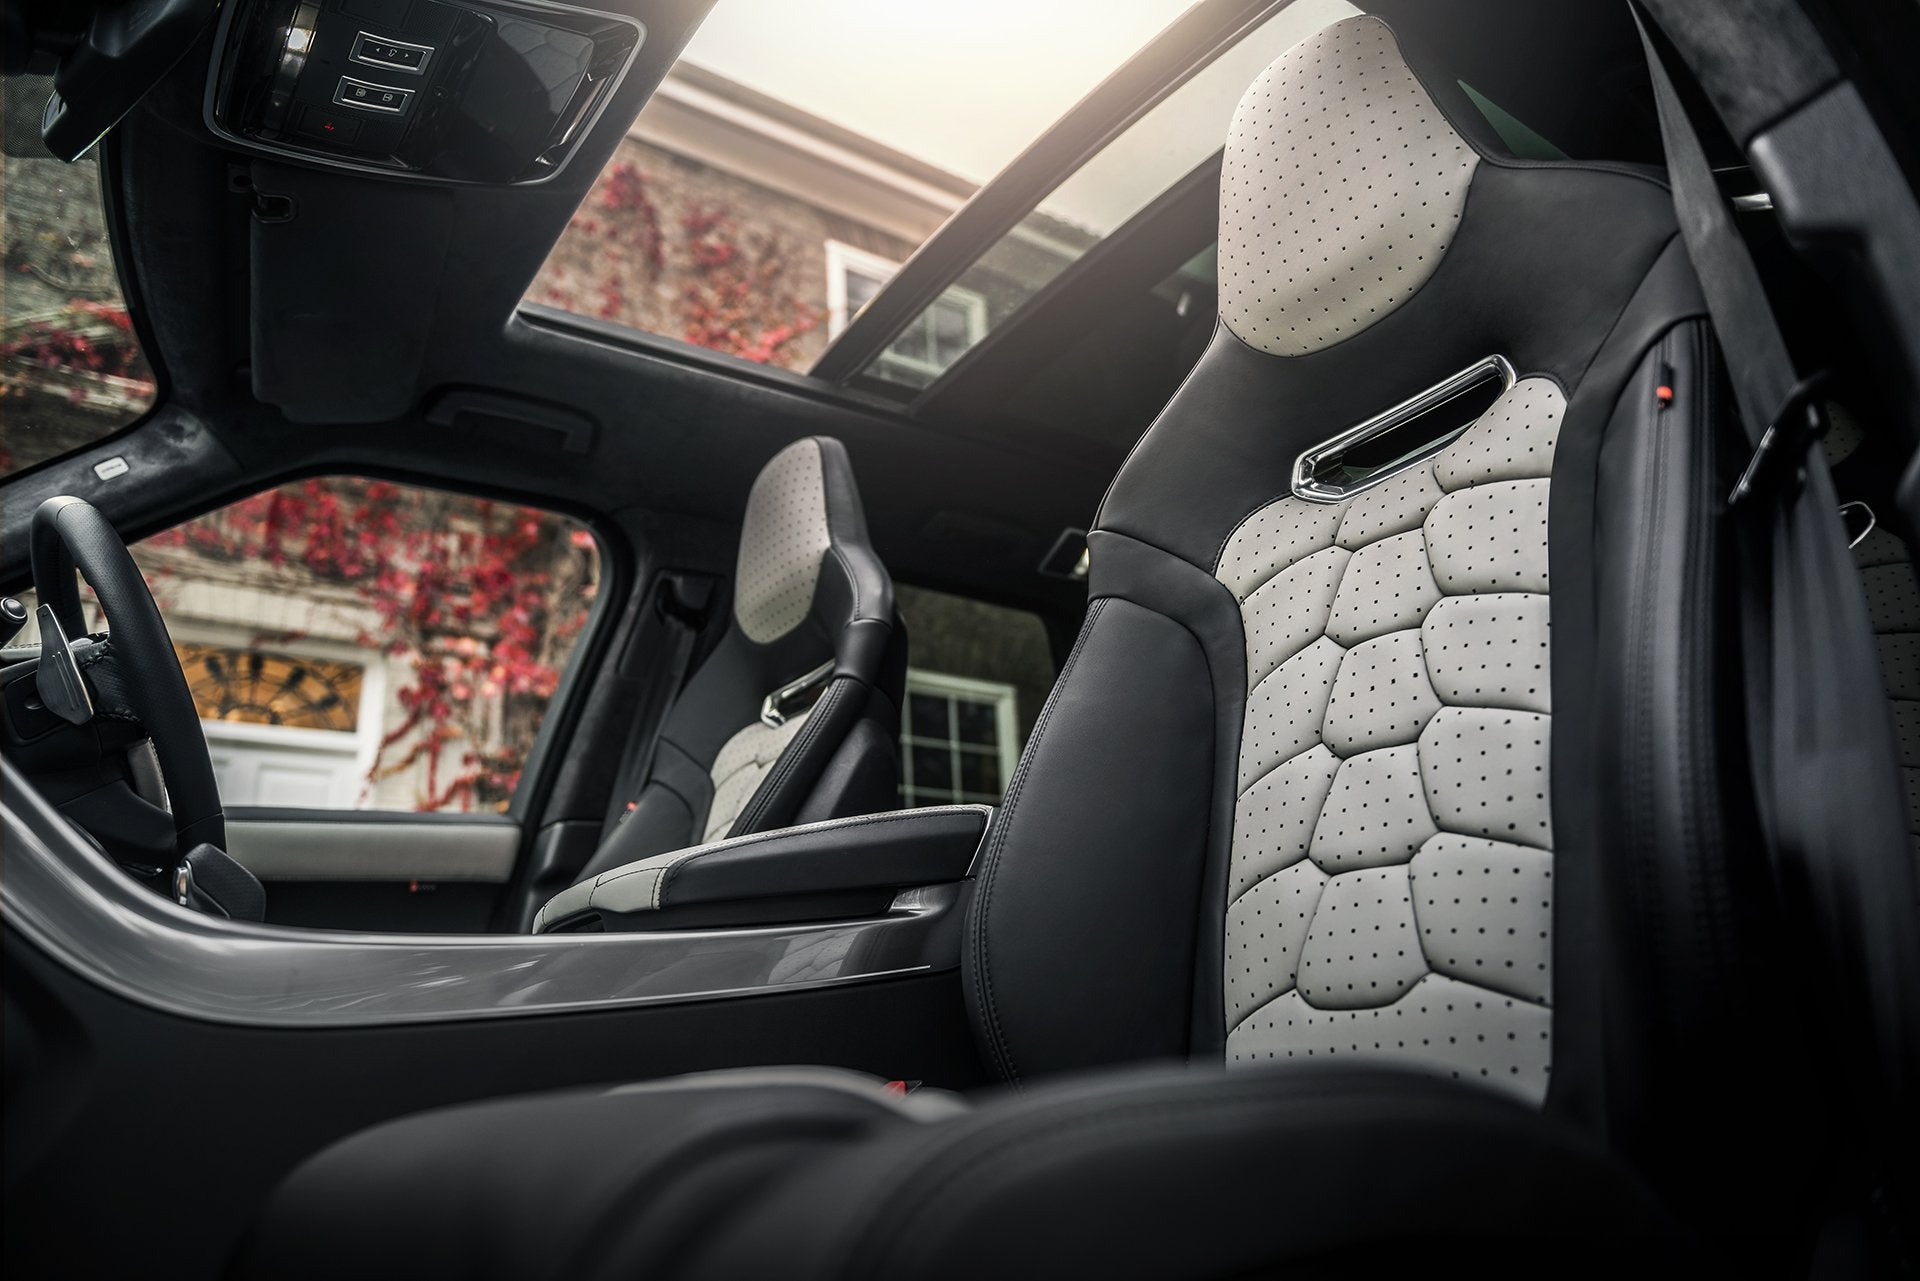 Range Rover Sport Svr (2018-Present) Leather Interior by Kahn - Image 1821